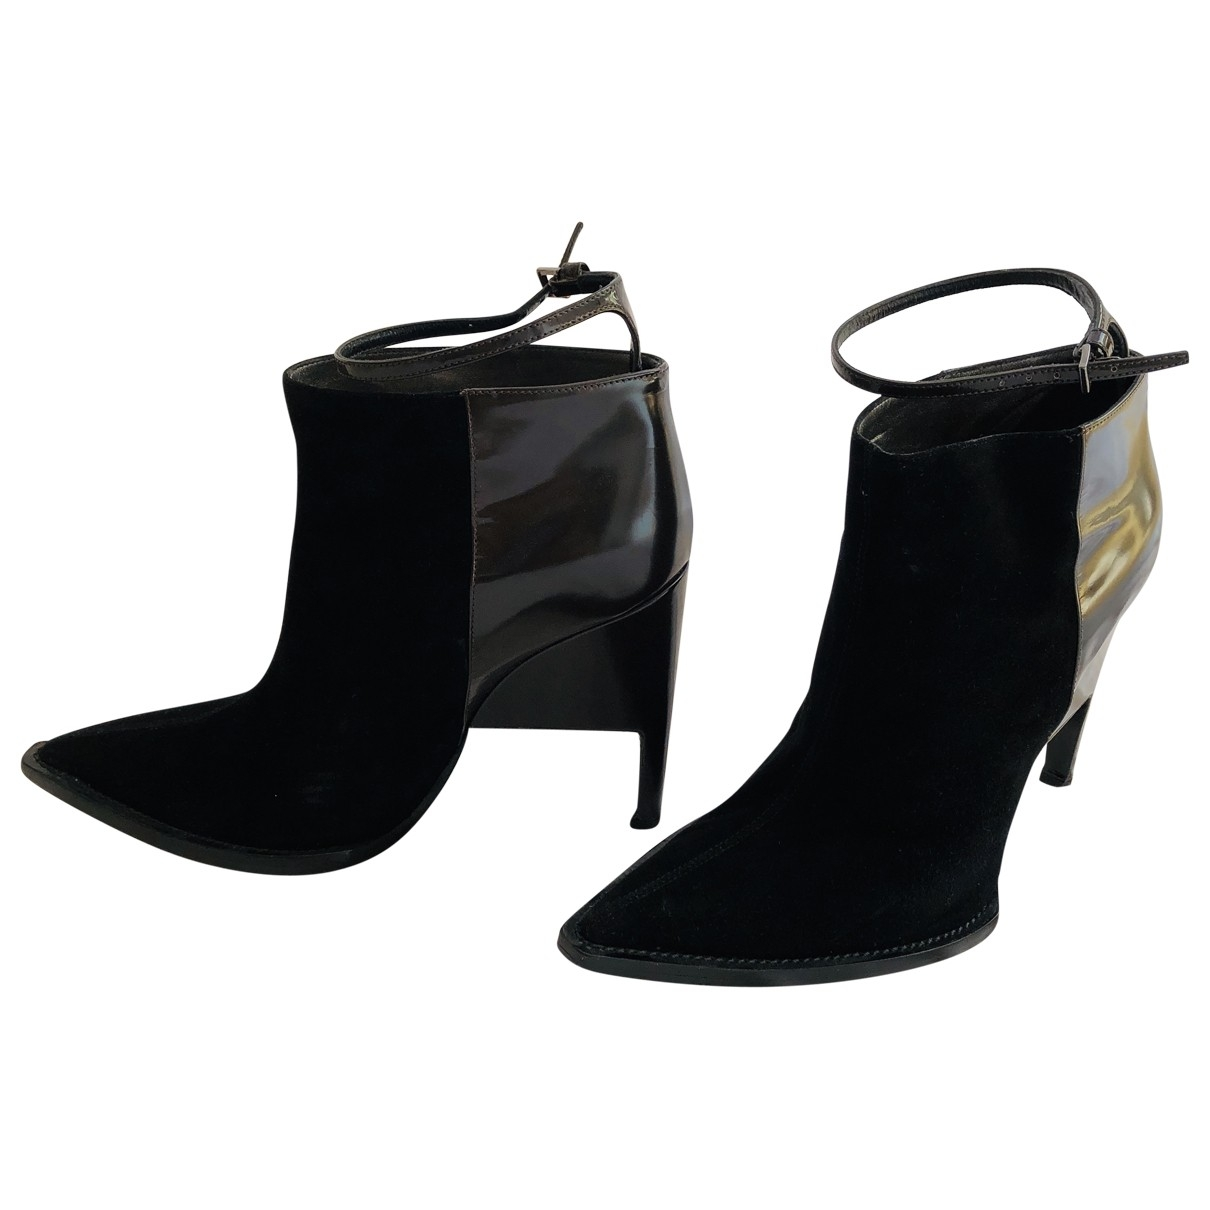 John Galliano \N Black Leather Ankle boots for Women 36 EU